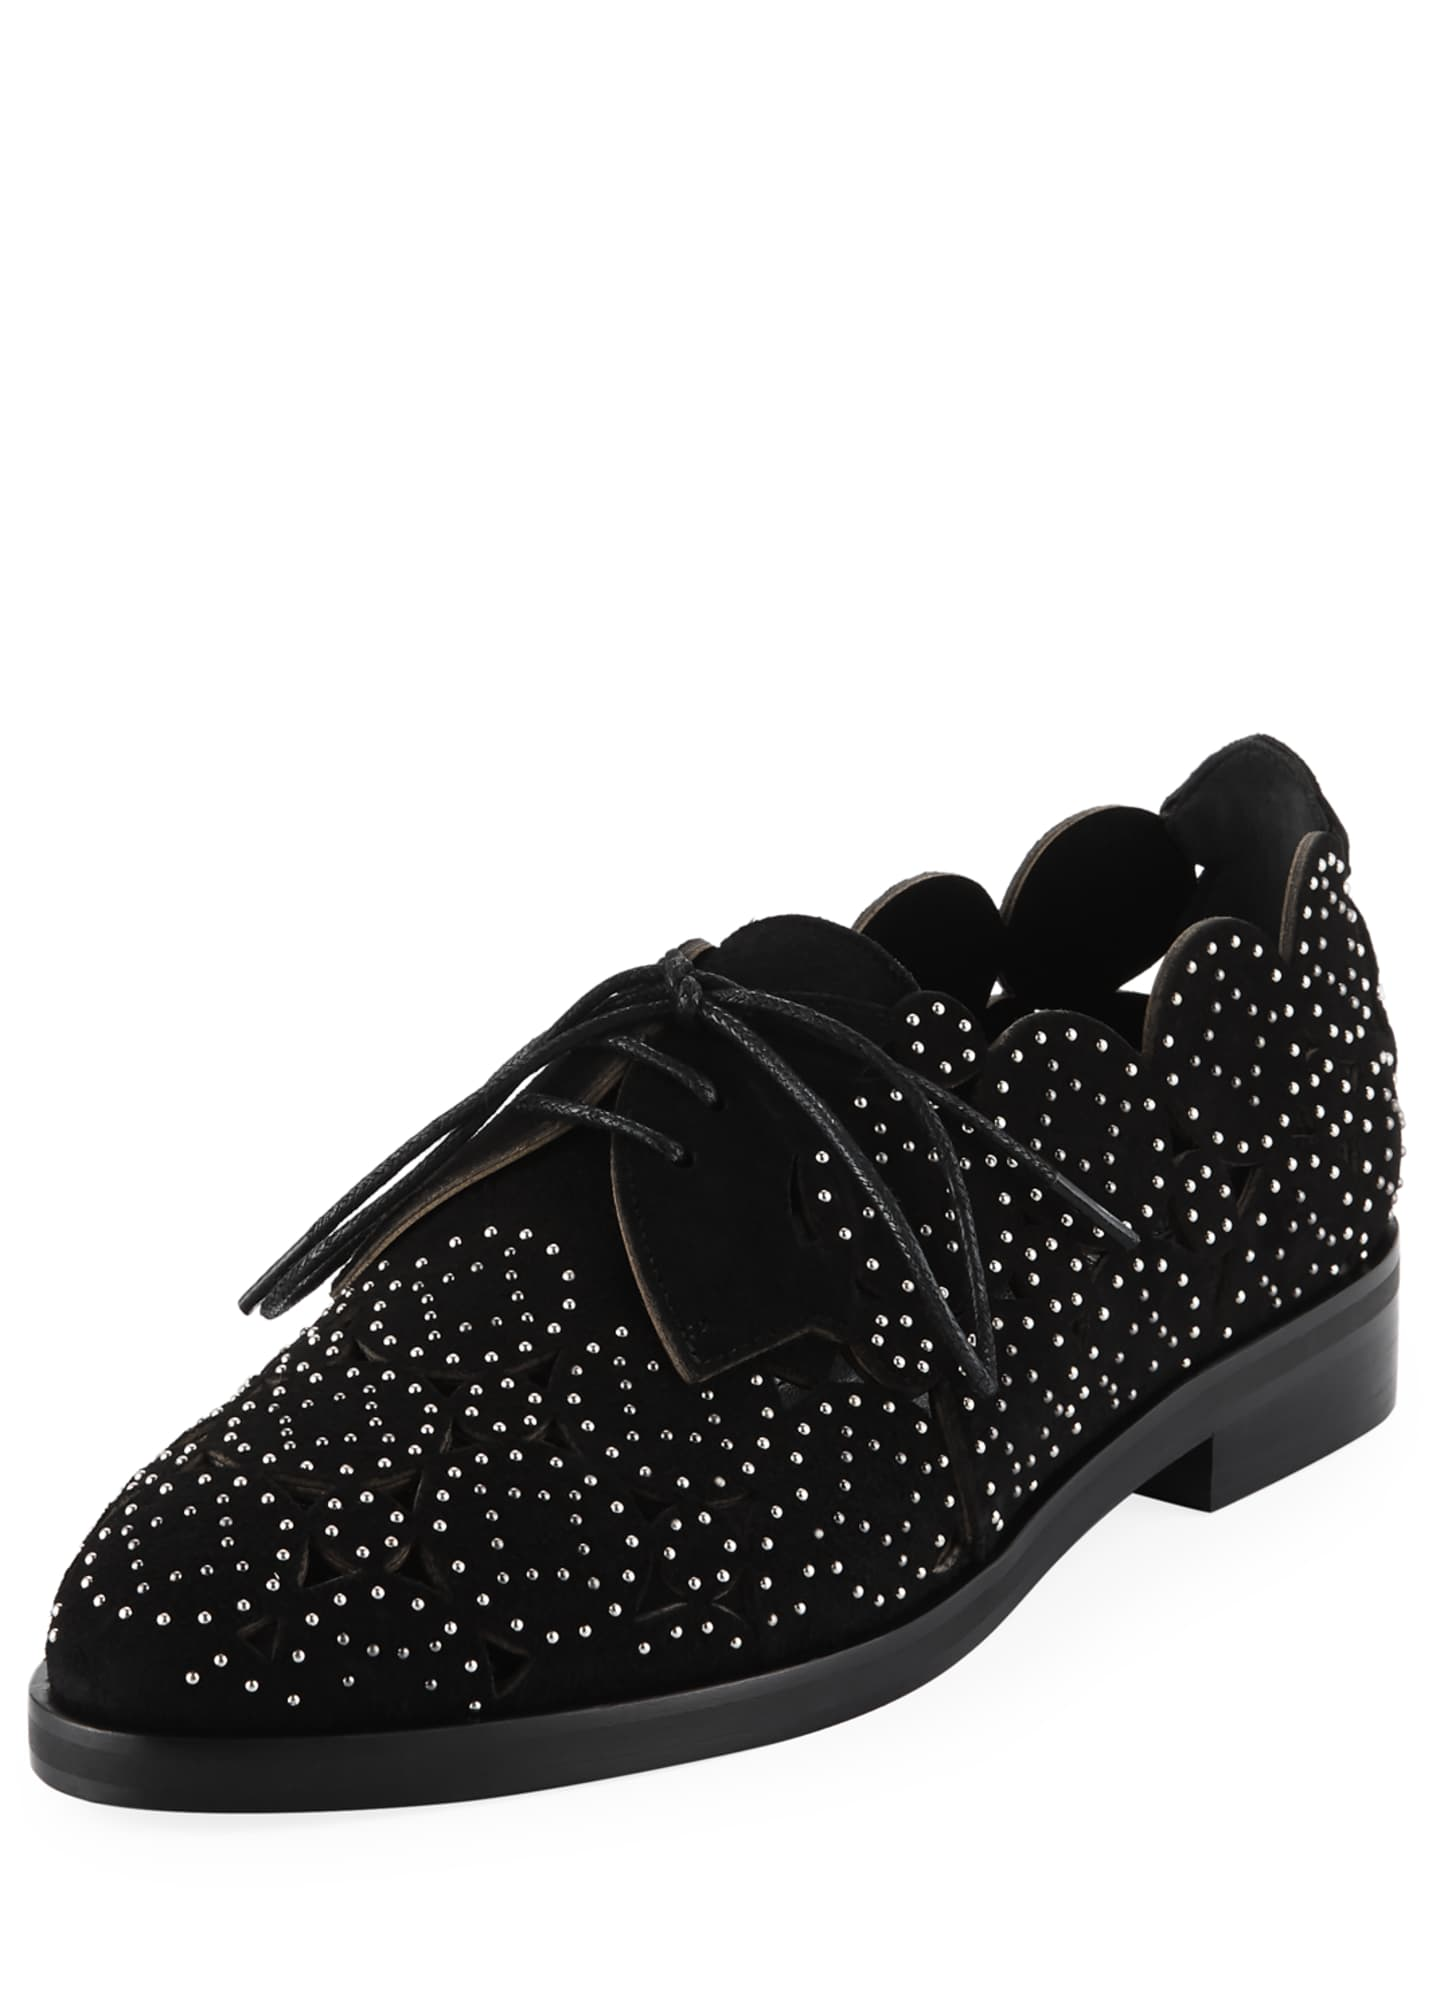 ALAIA Laser-Cut Studded Loafers